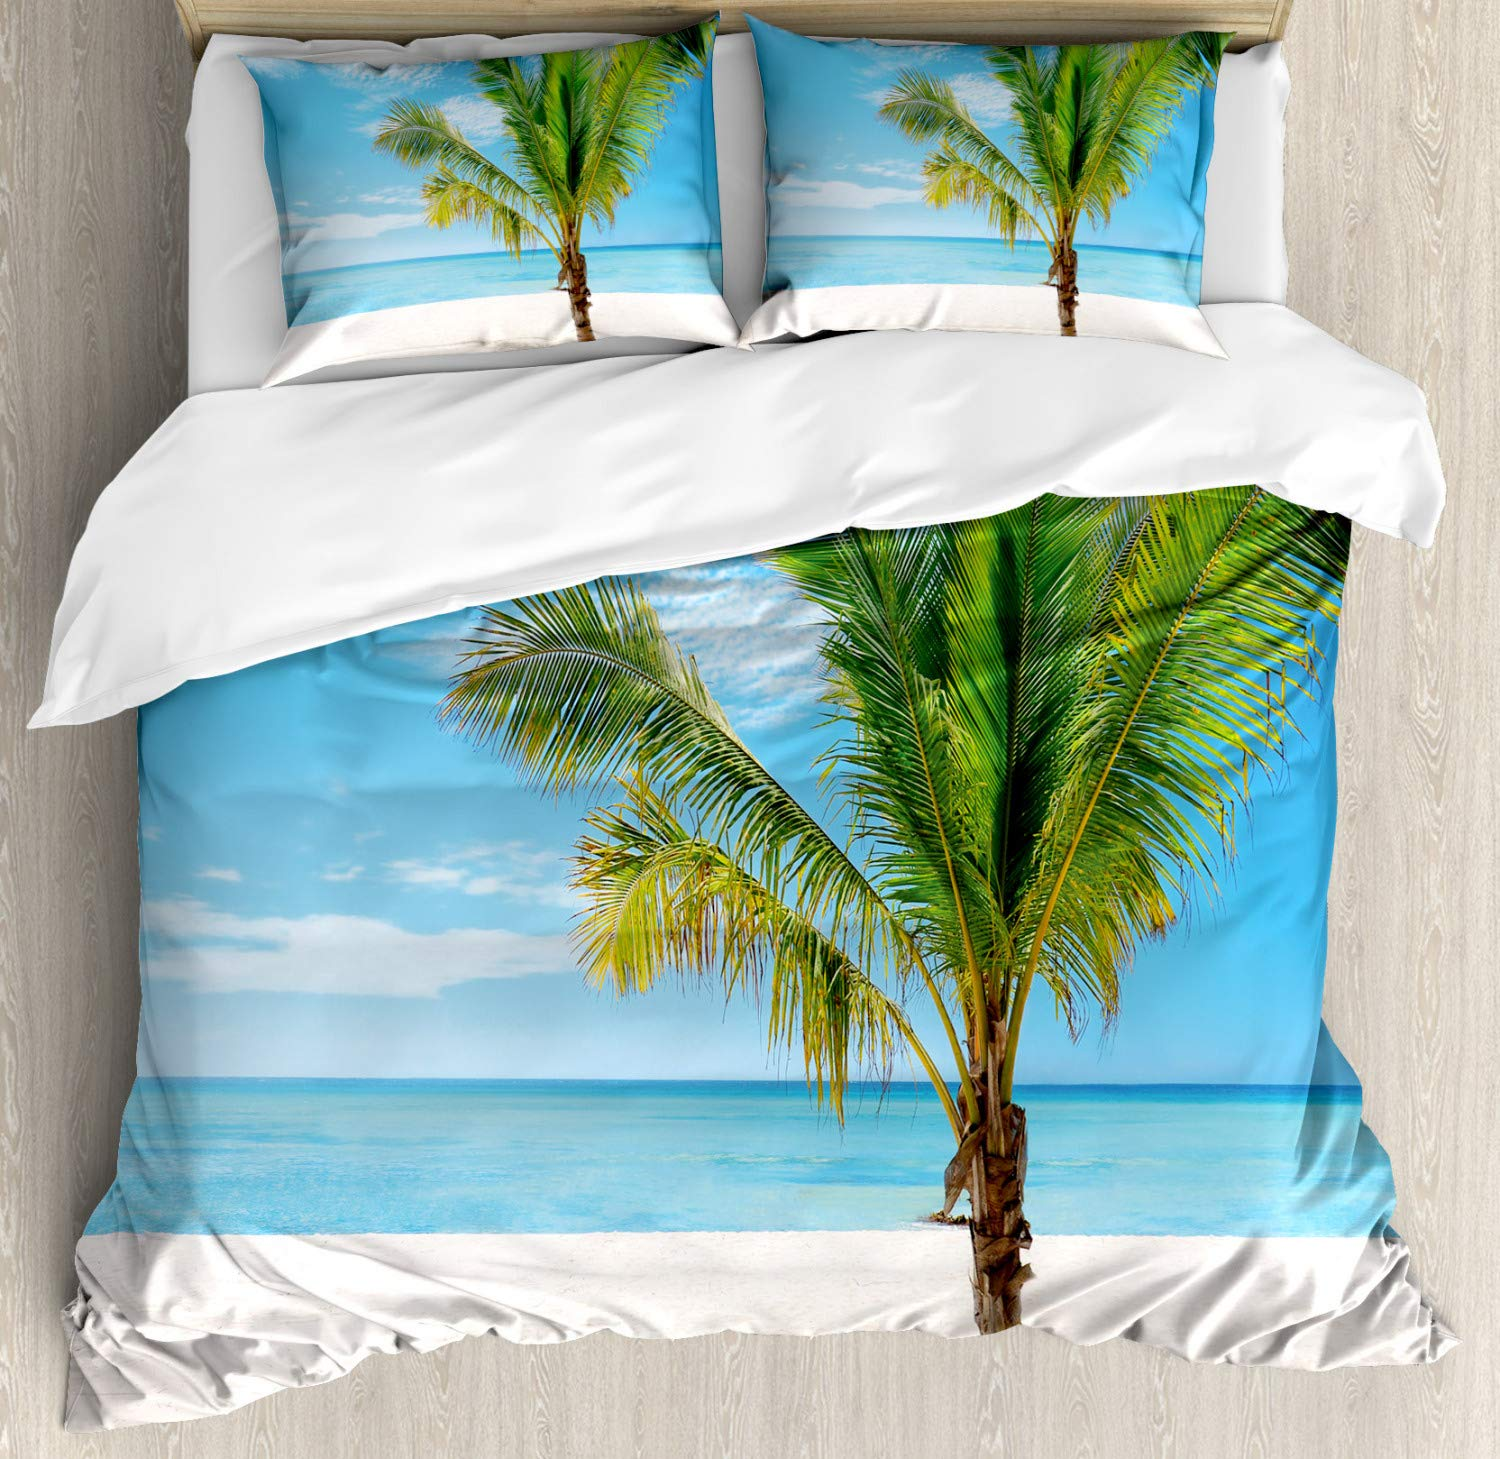 Tropical Duvet Cover Set Exotic Beach With Palm Tree In Saona Island Sunny Summer Day Seaside Photo Decorative 3 Piece Bedding Duvet Cover Aliexpress